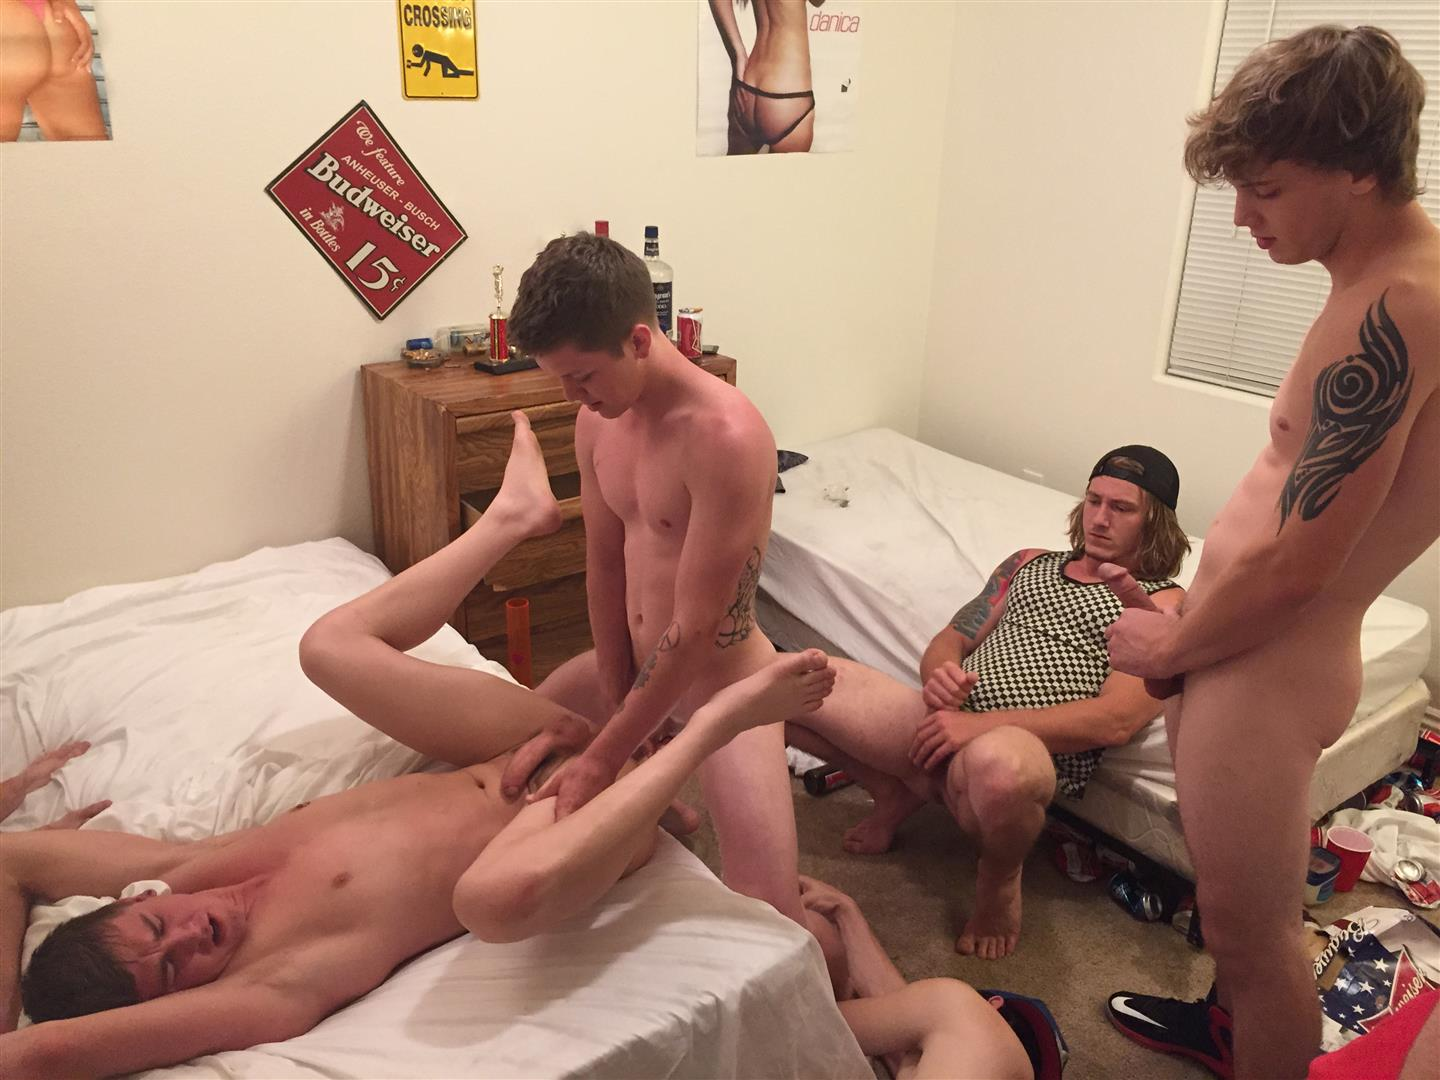 Fraternity-X-Naked-Frat-Boys-Barebacking-Freshman-Ass-Amateur-Gay-Porn-06 Fraternity Boys Take Turns Barebacking A Scared Freshman Ass